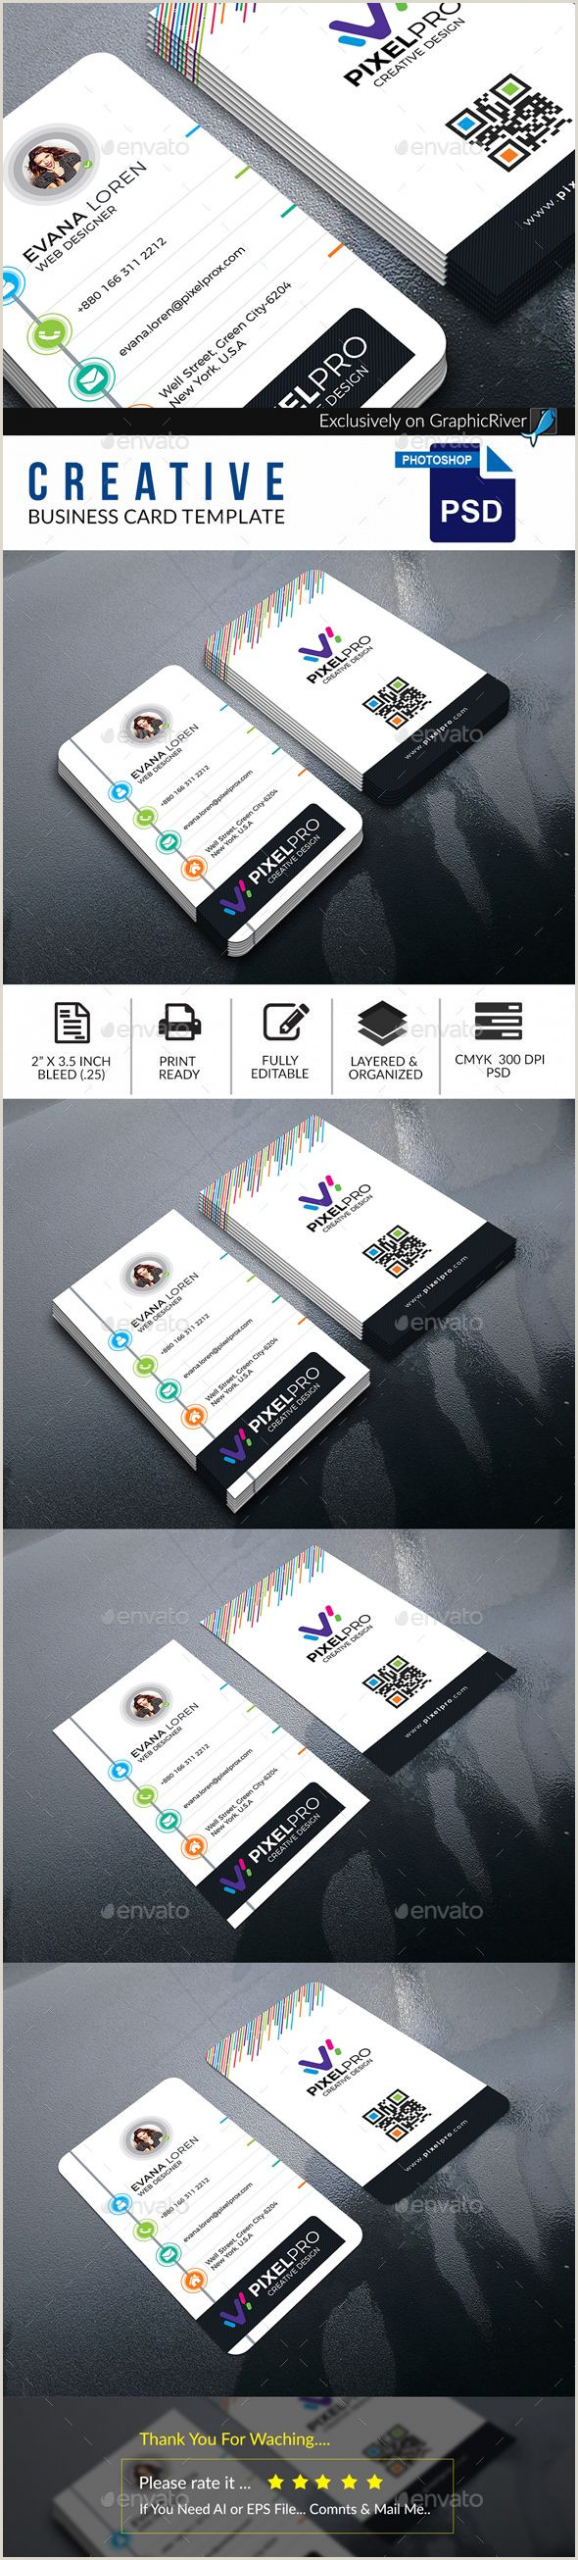 Online Business Cards Template Business Card Template Simple Creative • Download Here